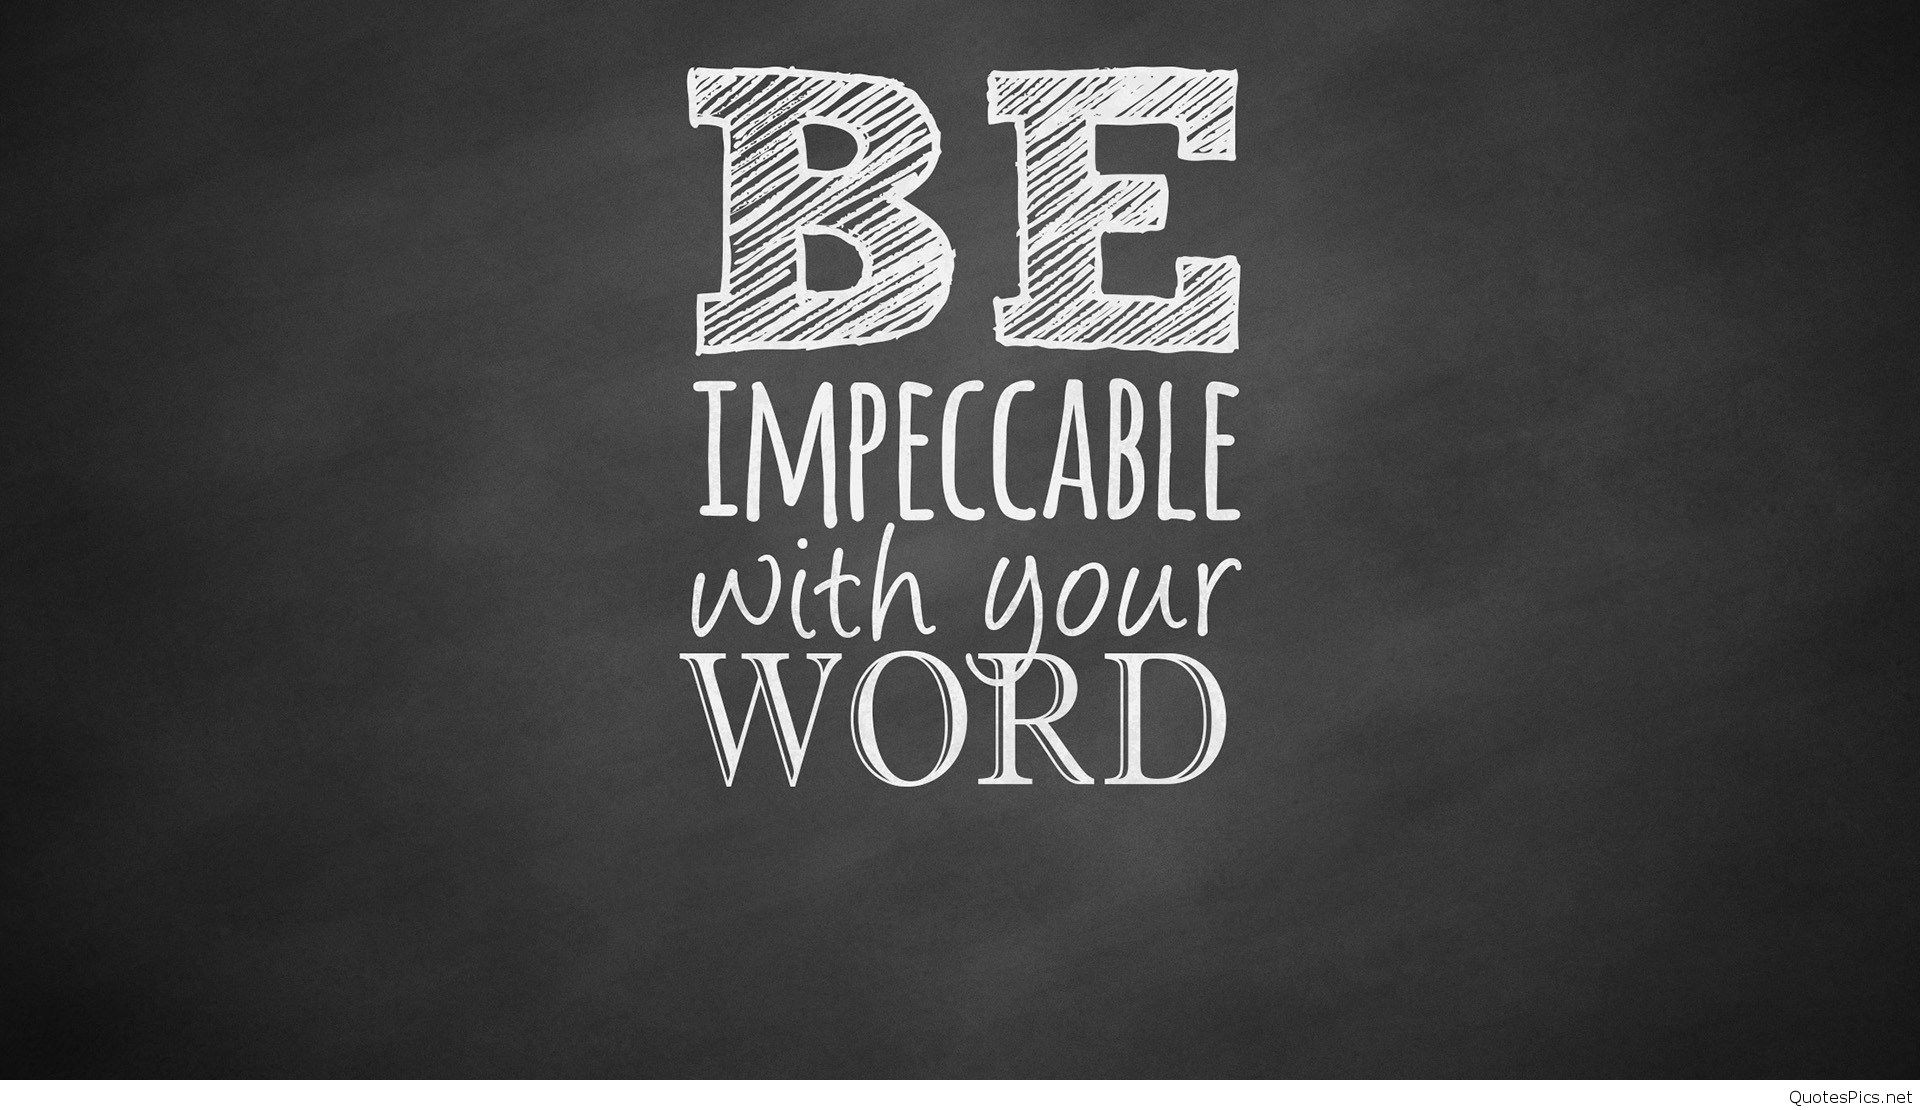 1920x1110 quote-be-impeccable-with-your-word-hd-wallpaper ·  tumblr_m4wfx0beoh1qcu3tio1_500_large